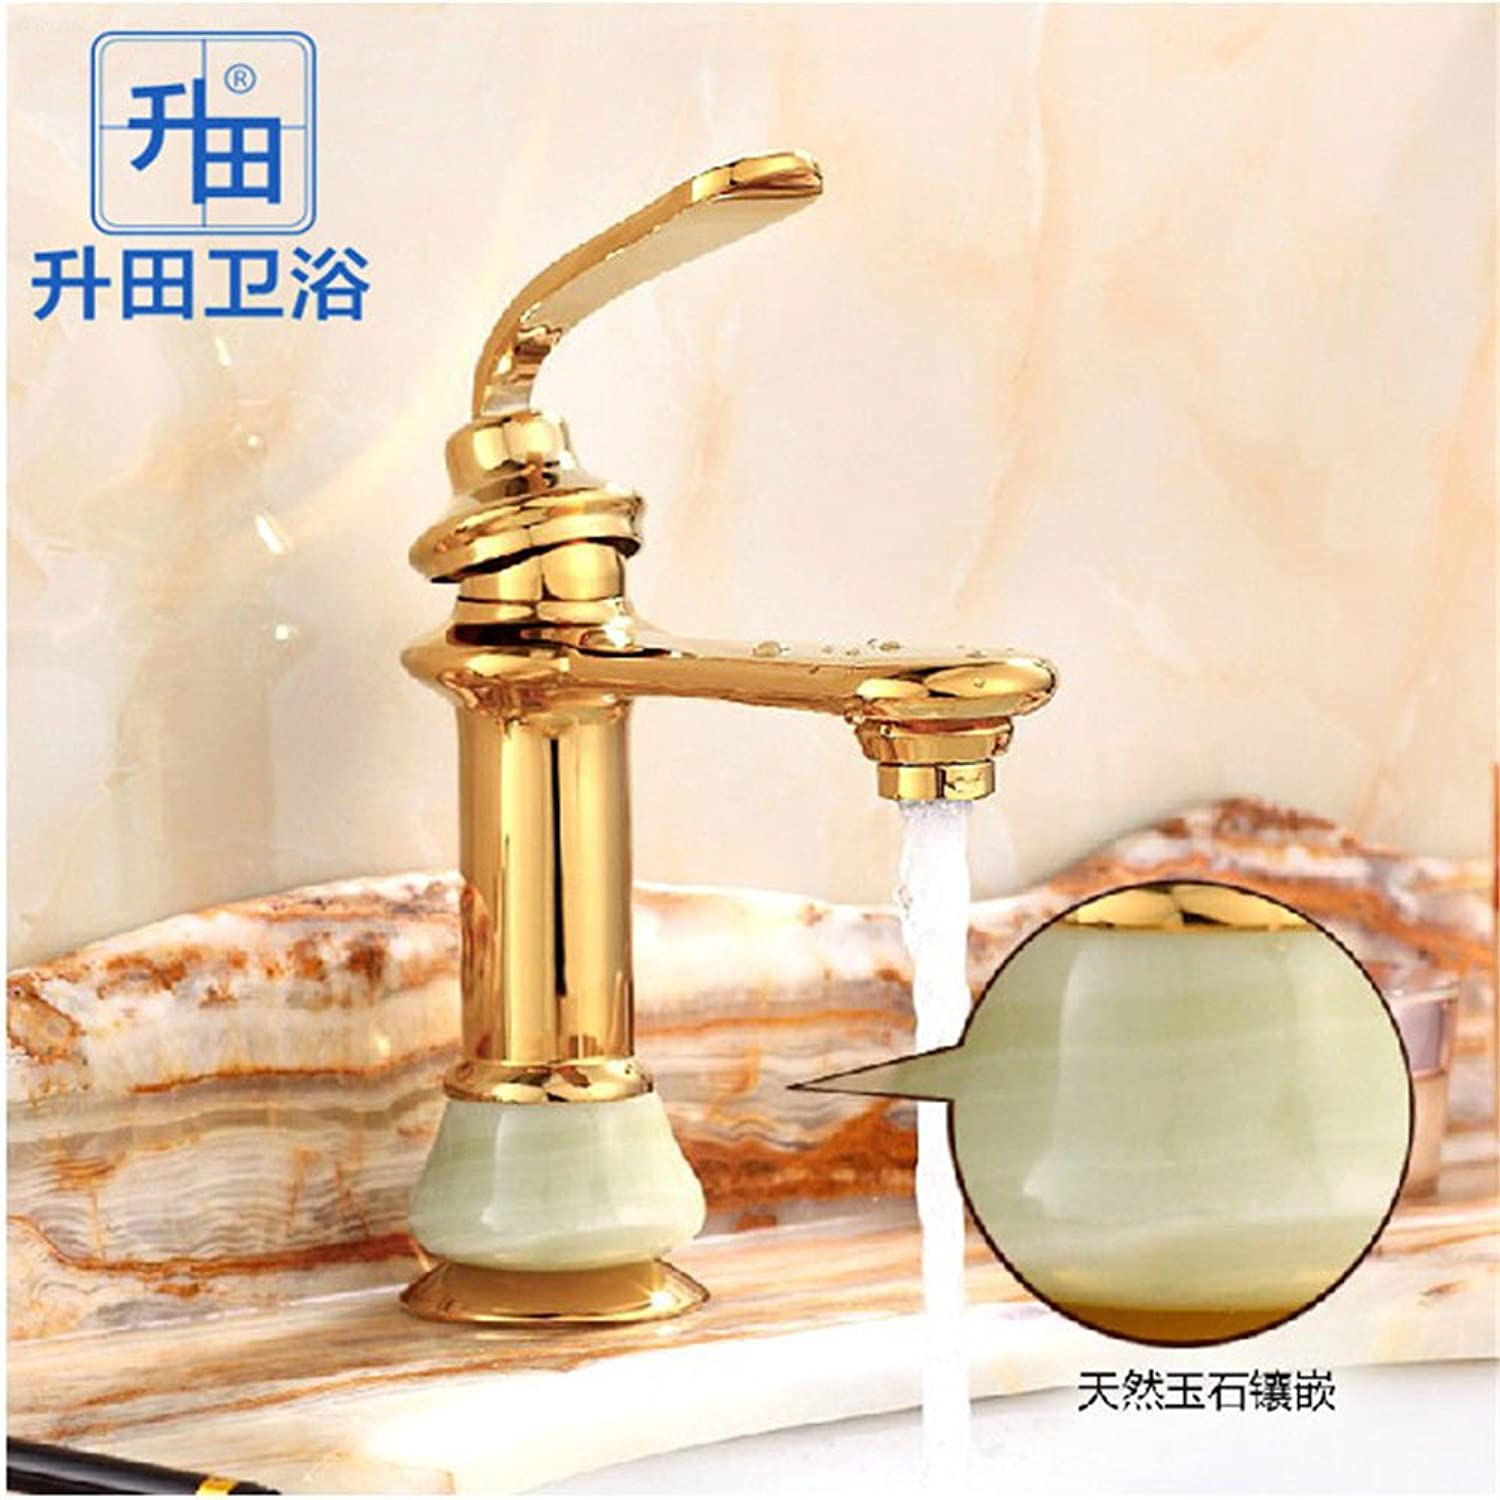 ETERNAL QUALITY Bathroom Sink Basin Tap Brass Mixer Tap Washroom Mixer Faucet On the tub faucet full copper golden Jade basin faucet single hole cold and hot blond Kitche